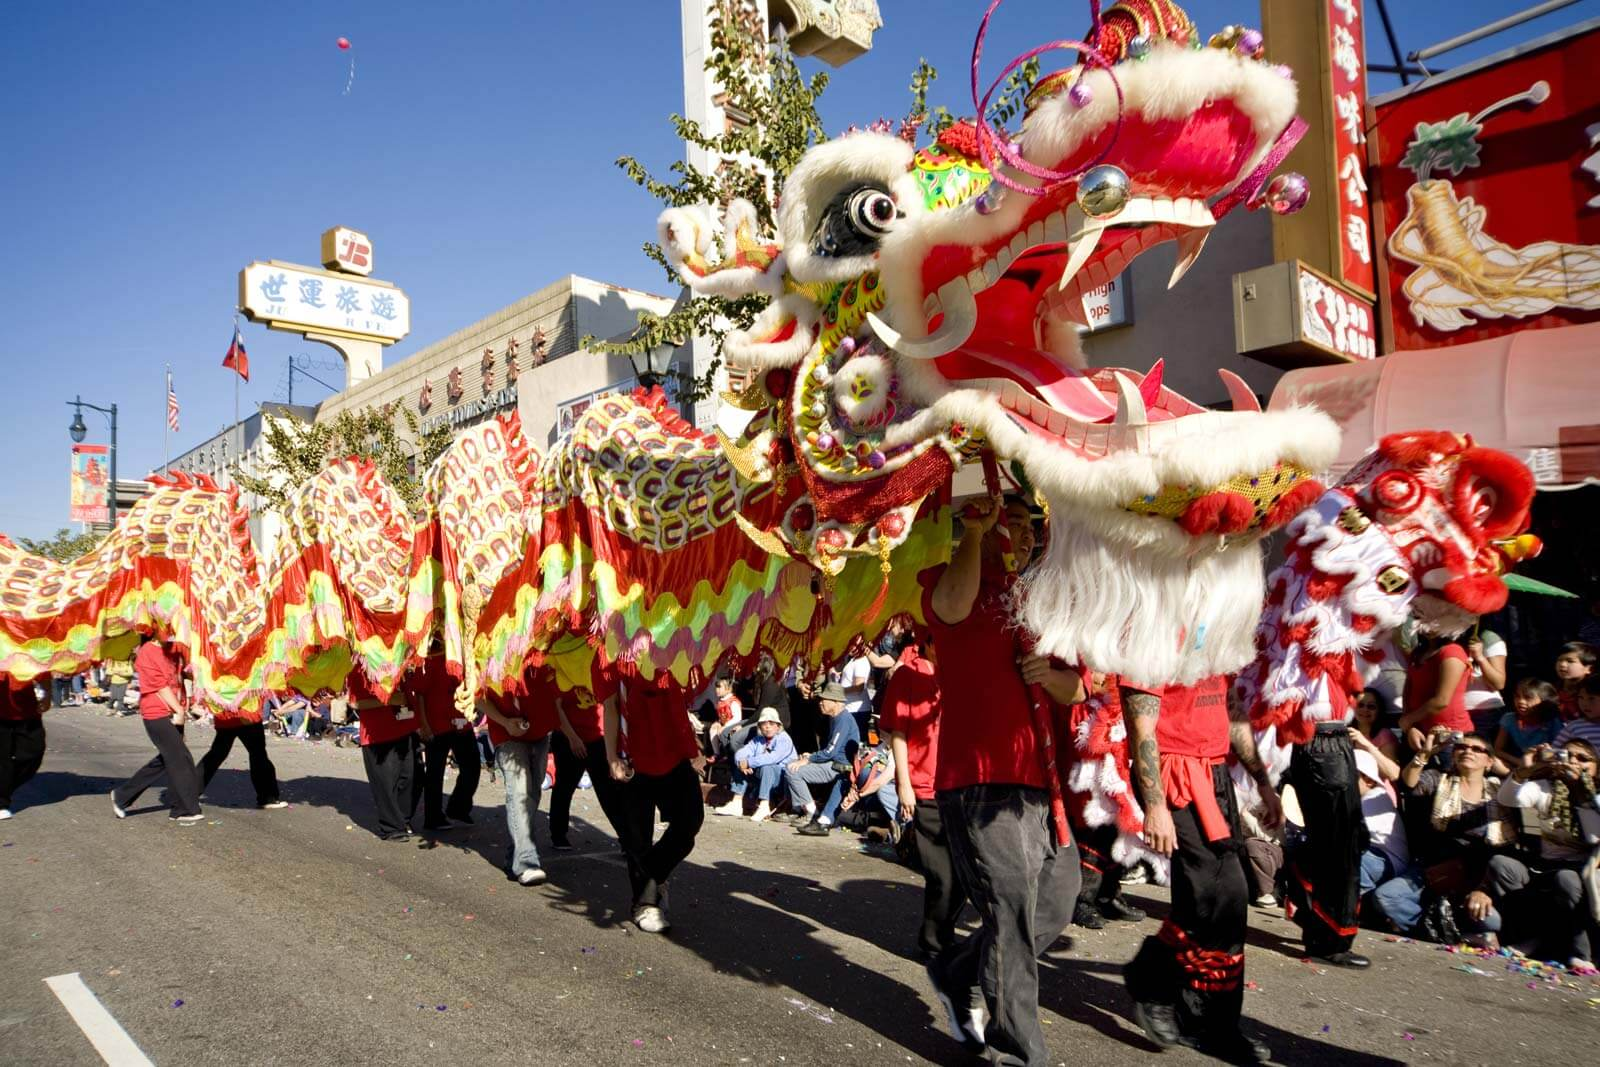 Chinese new year is big holiday